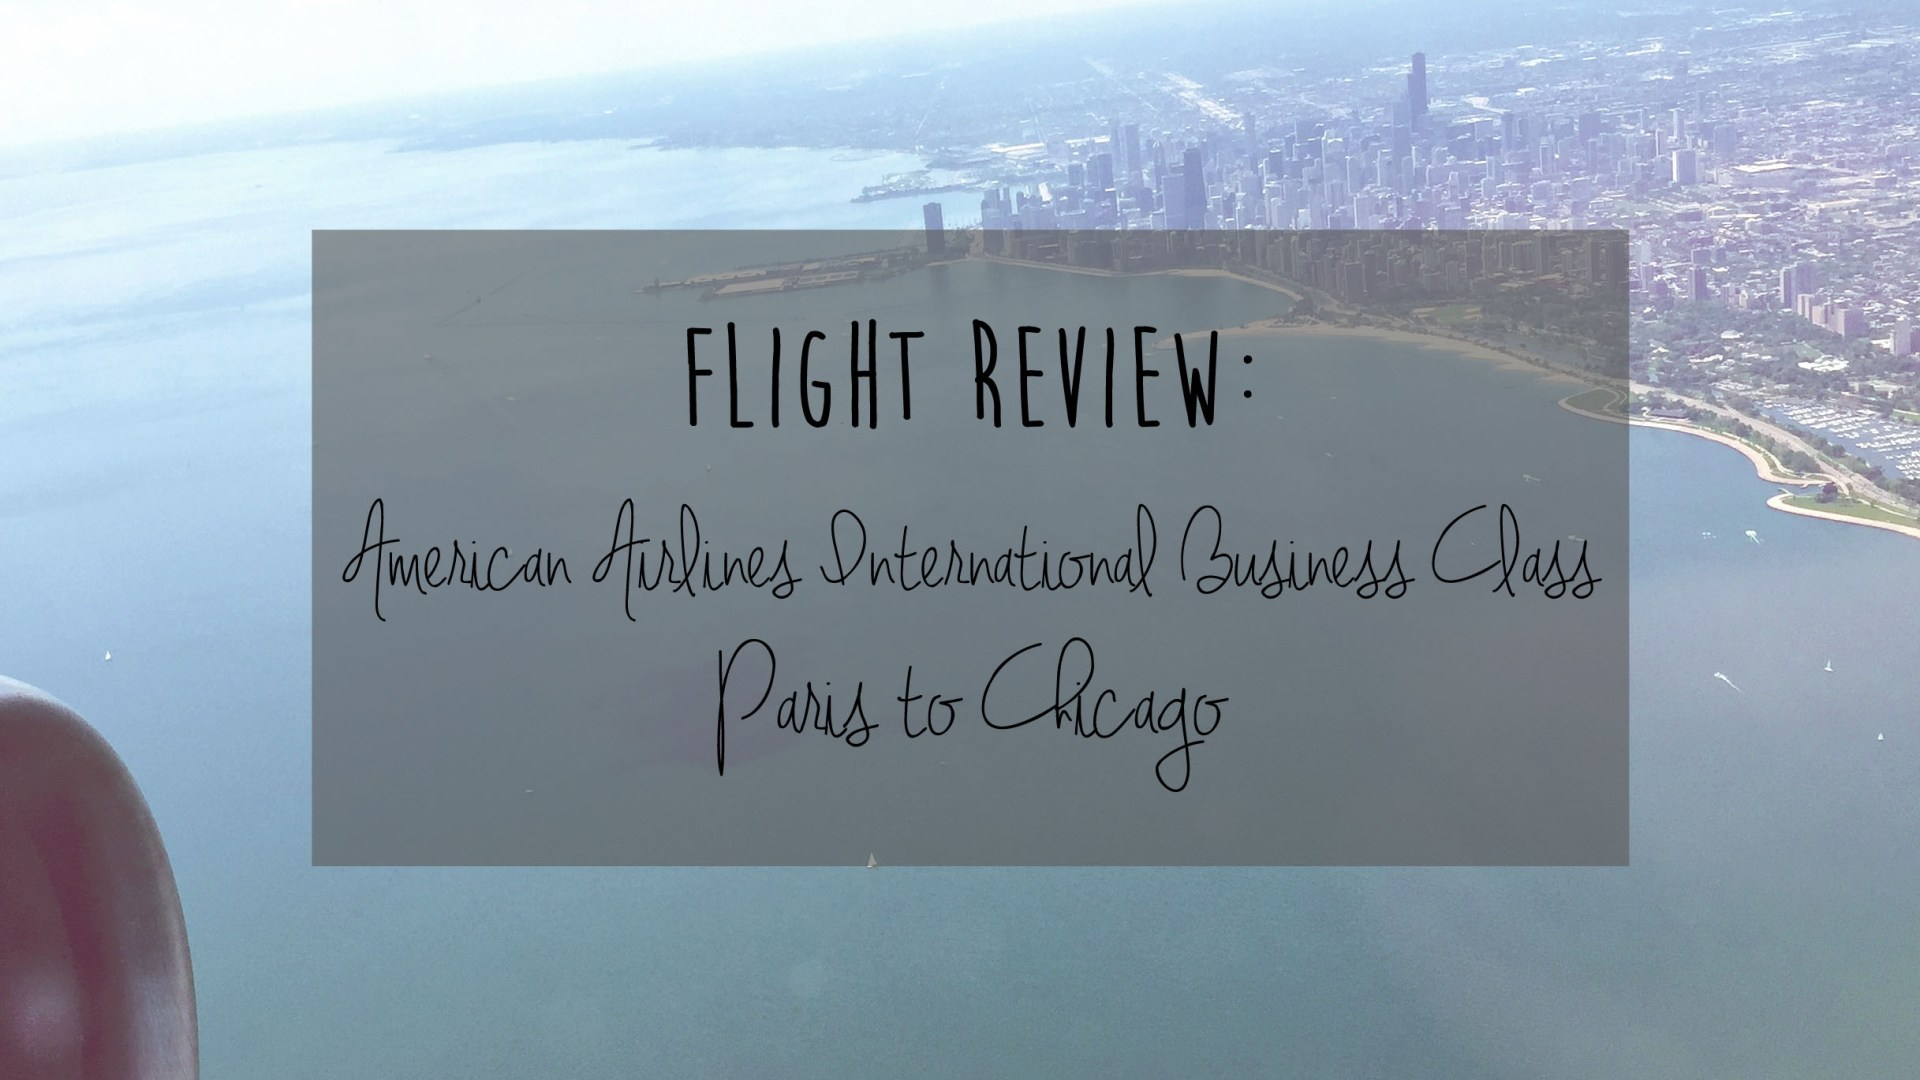 Flight Review: American Airlines International Business Class – Paris to Chicago